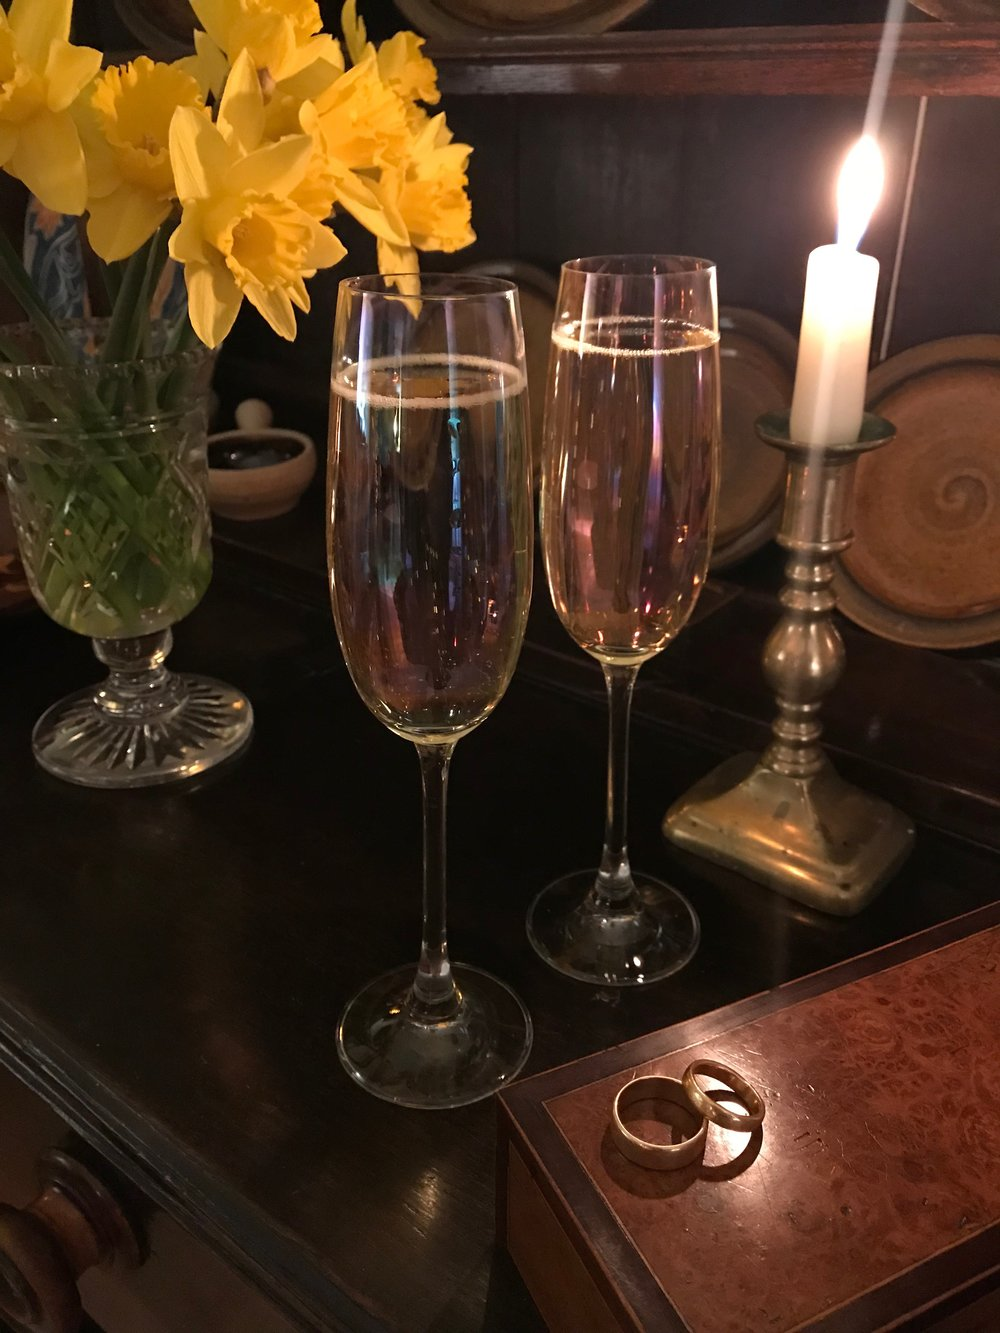 Enjoy a glass or two of champagne in the relaxed, friendly atmosphere of our home whilst you reflect on your day and some homemade scones are warming in the oven...